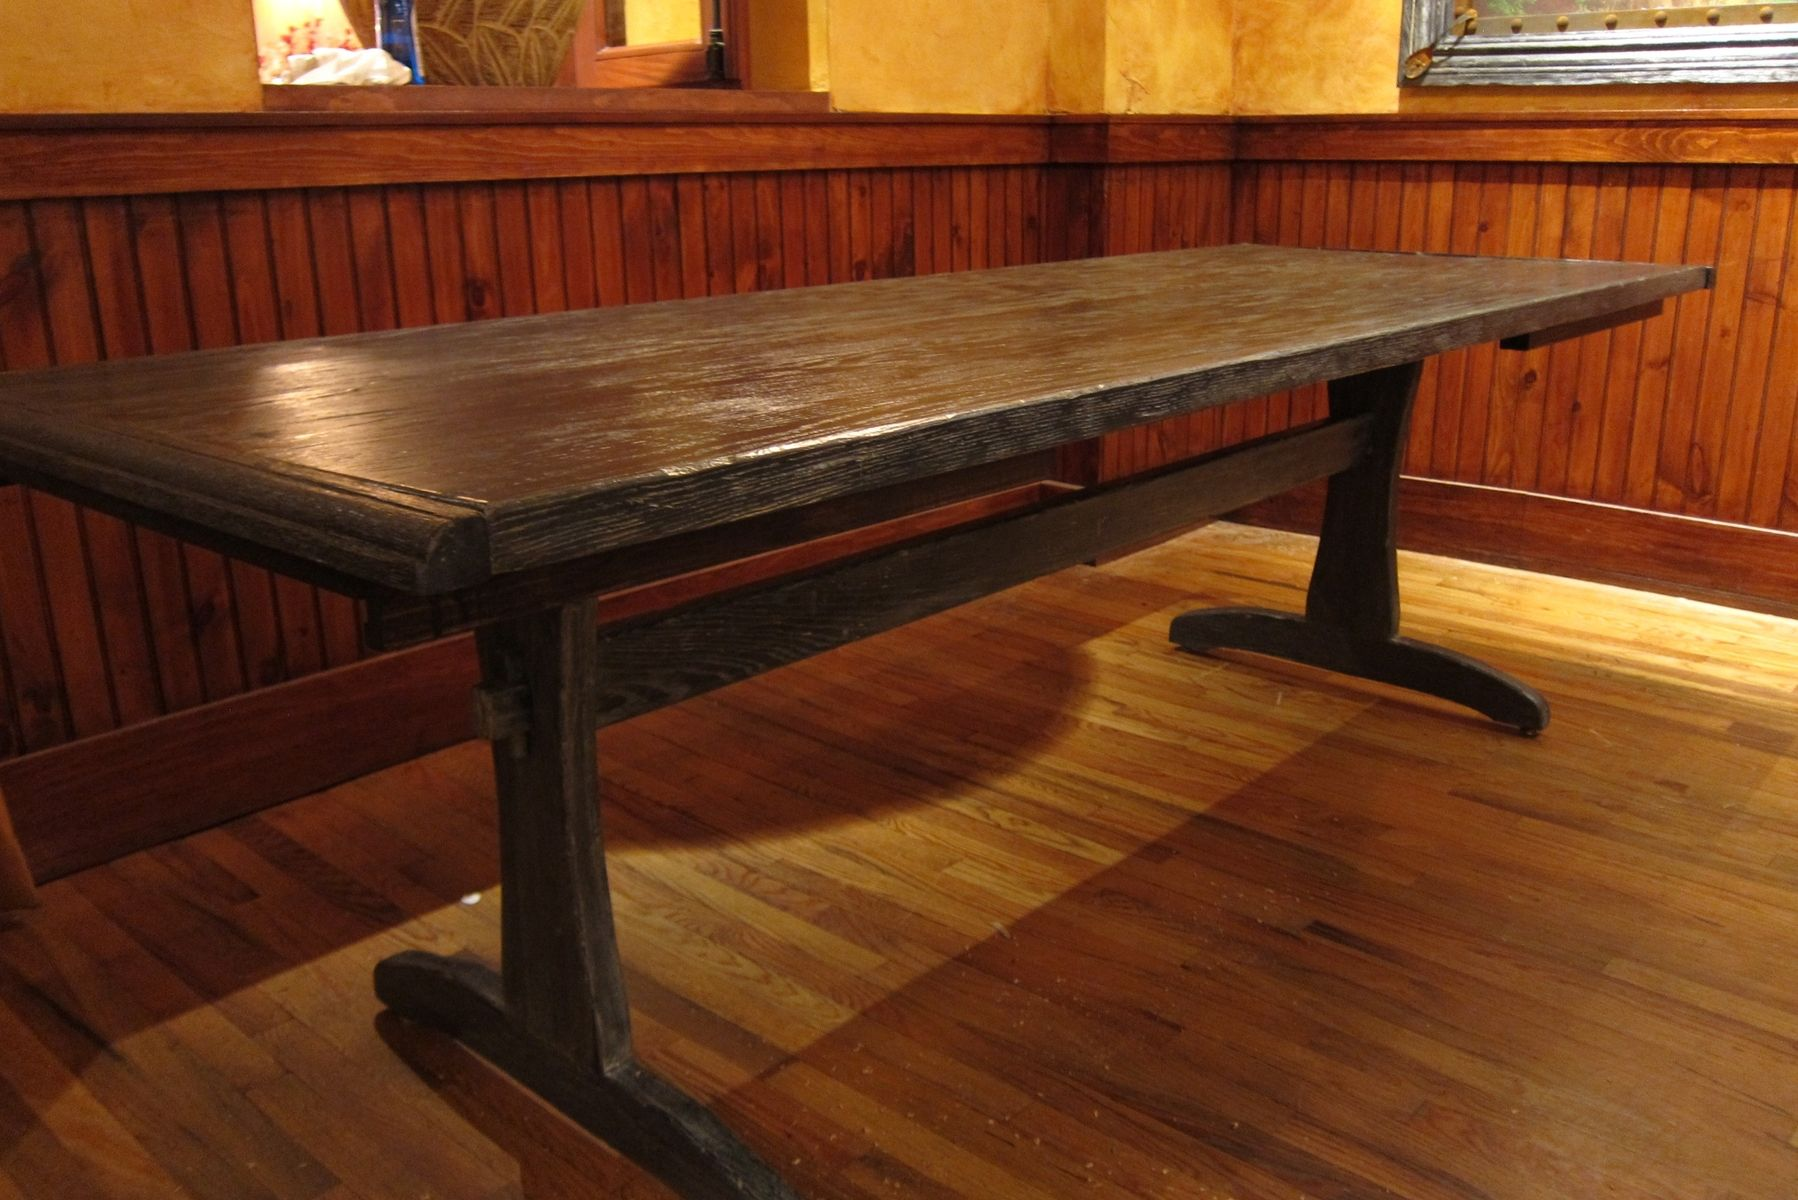 Handmade Rustic Dining Table By Recollection Design